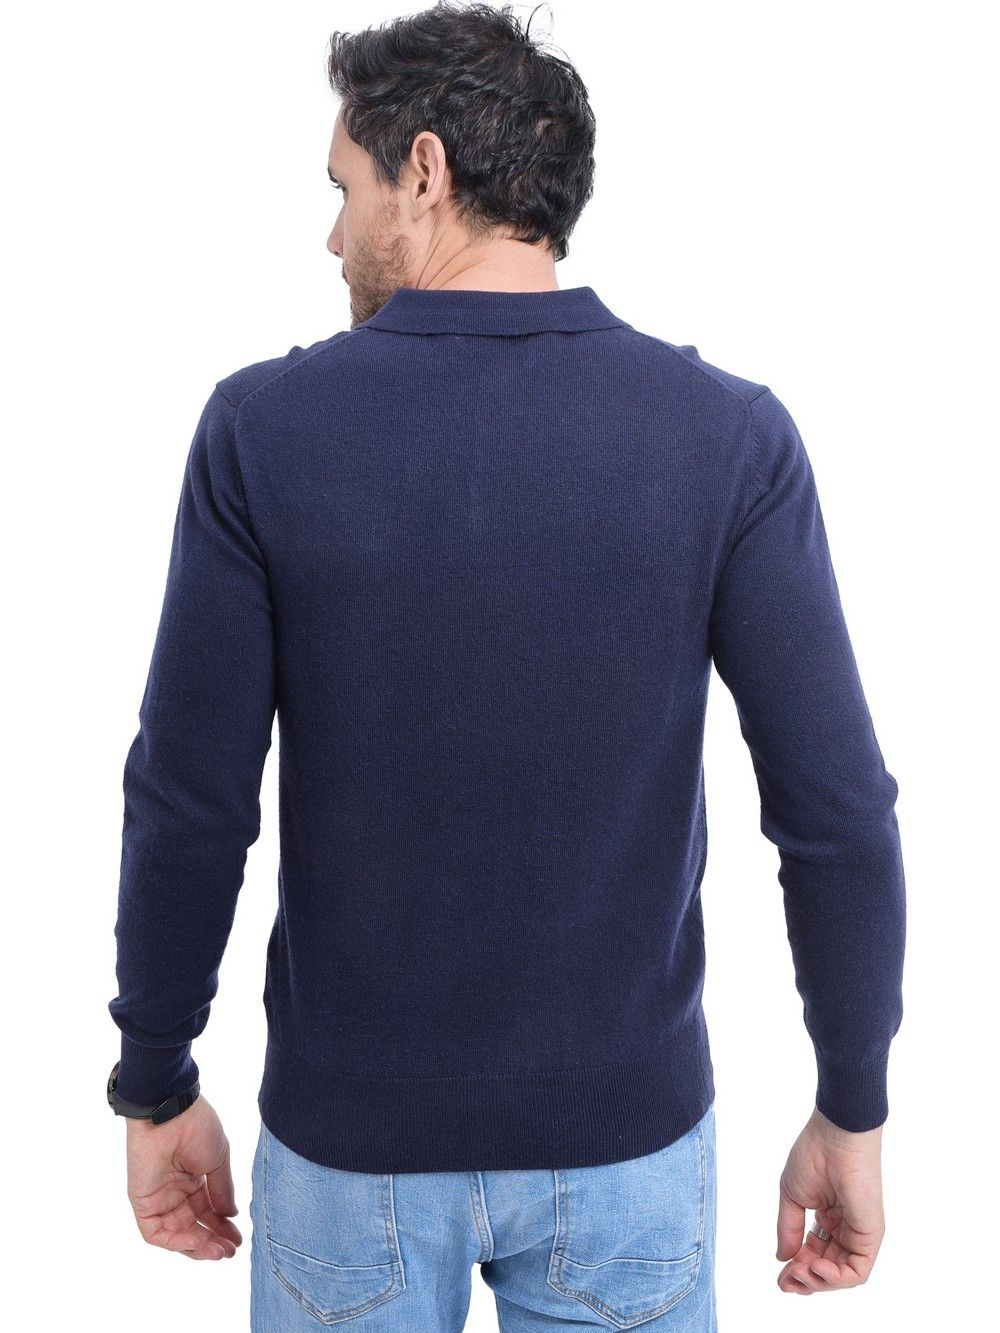 C&JO Polo Neck Button Up Sweater in Navy